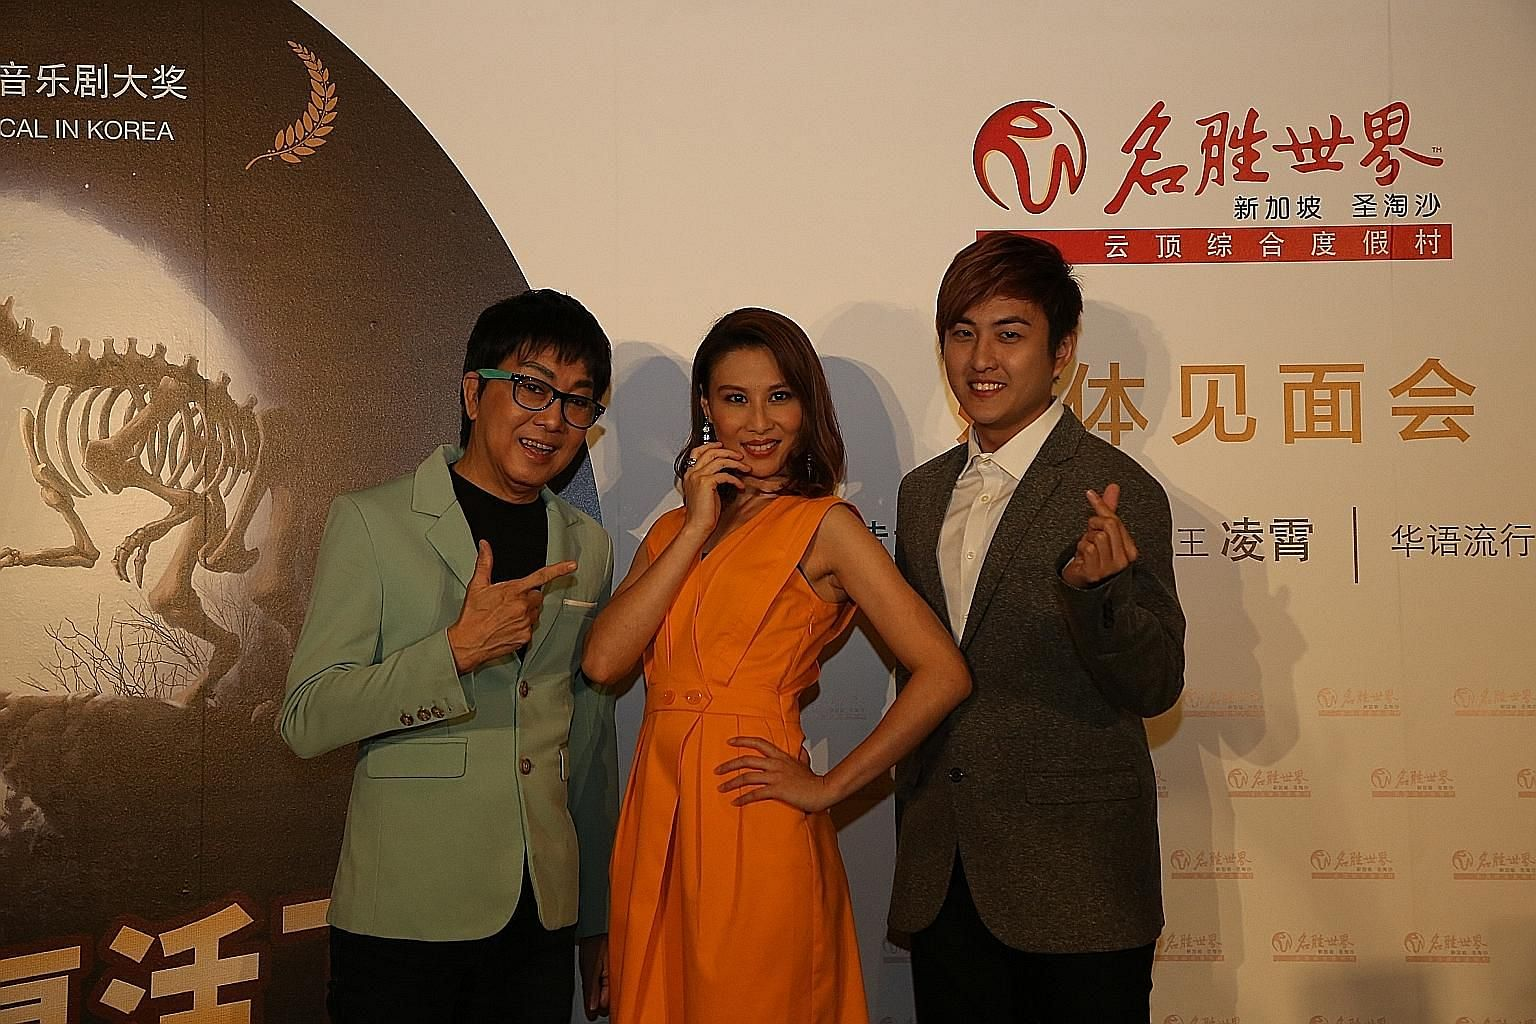 Musical Taru, an adaptation of a South Korean hit musical of the same name, stars (from left) Ling Xiao, Freya Lim and Huang Jinglun.